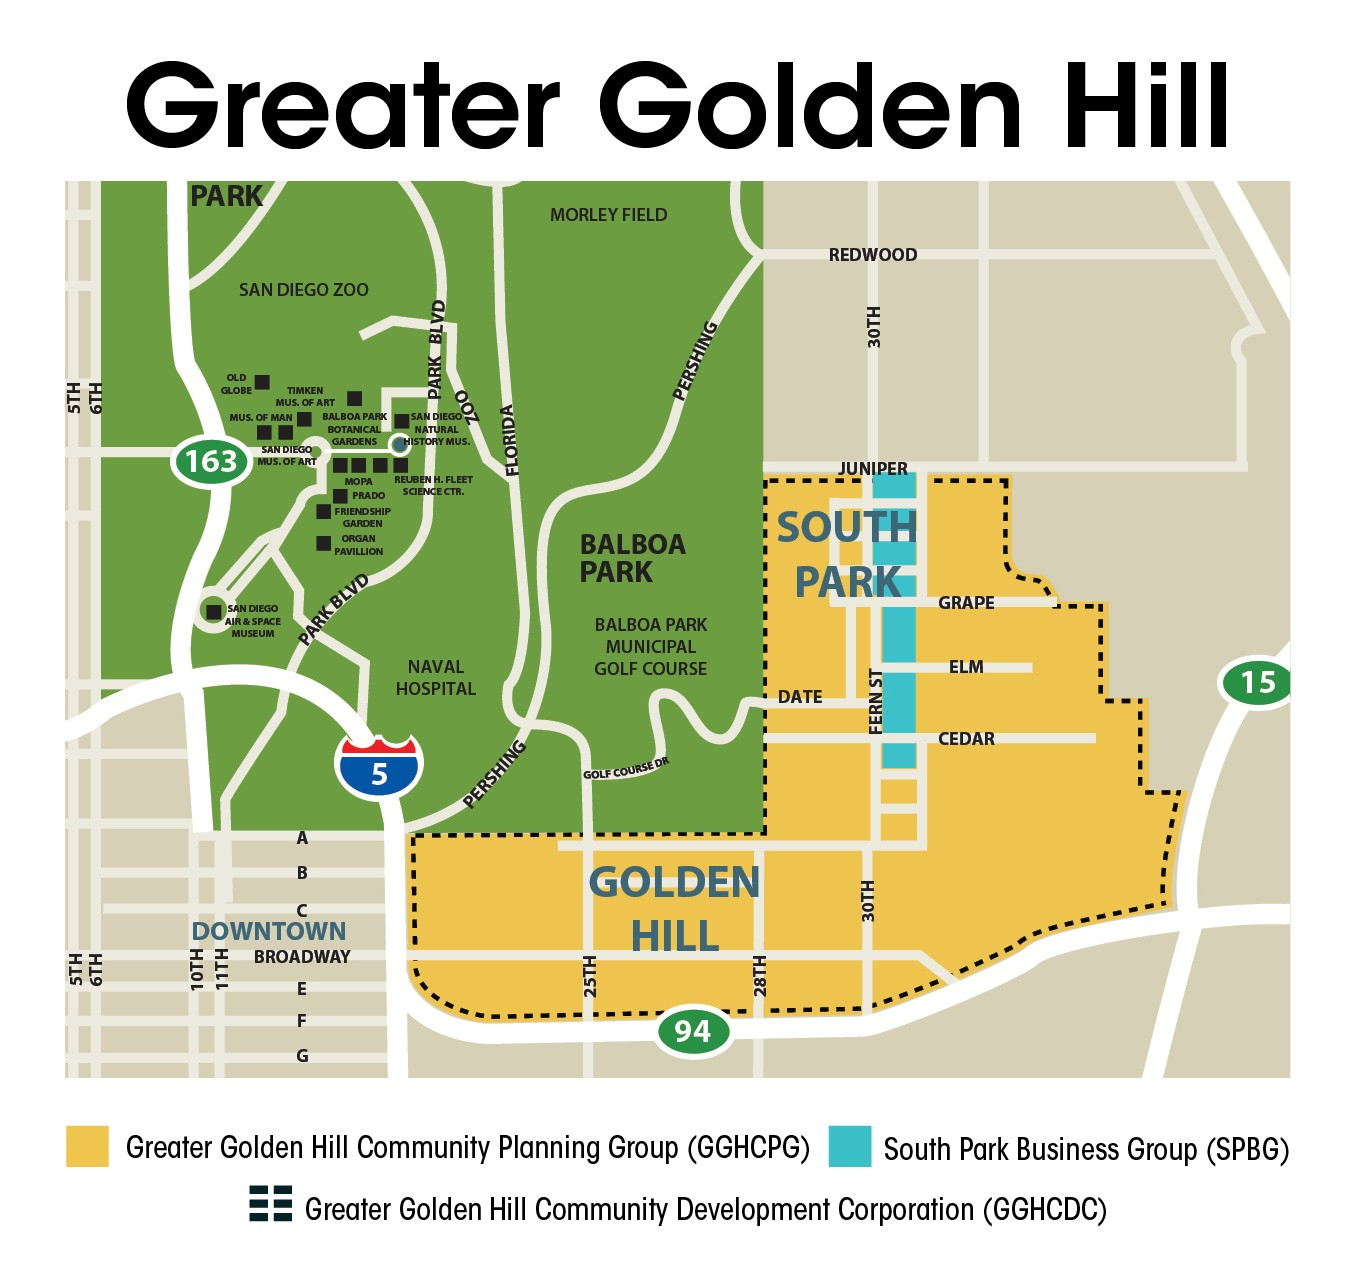 The community organizations of Greater Golden Hill San Diego